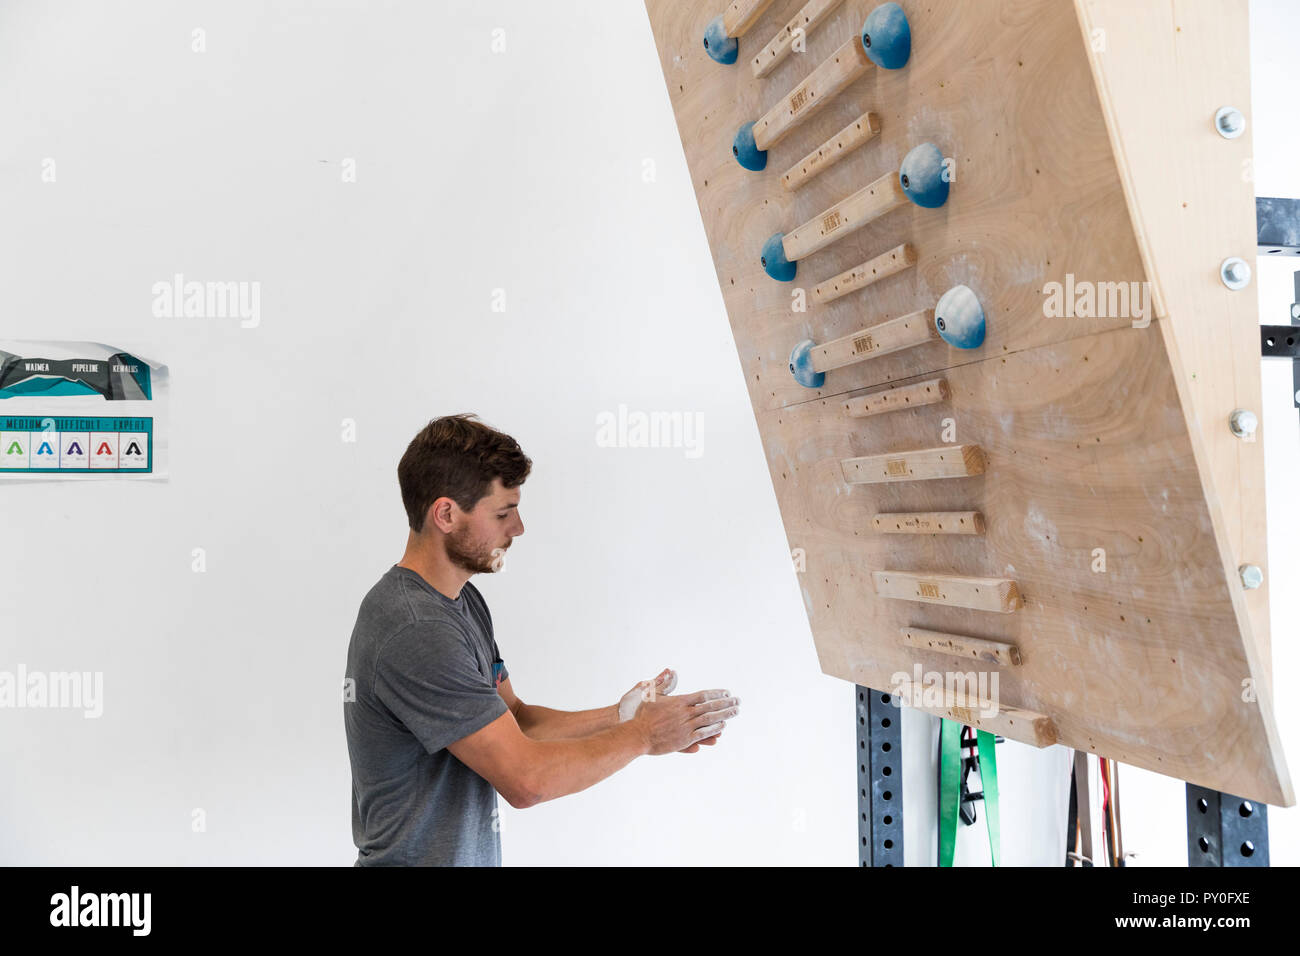 Male climber preparing to train on campus wall at indoor climbing gym, Oahu Hawaii, USA - Stock Image